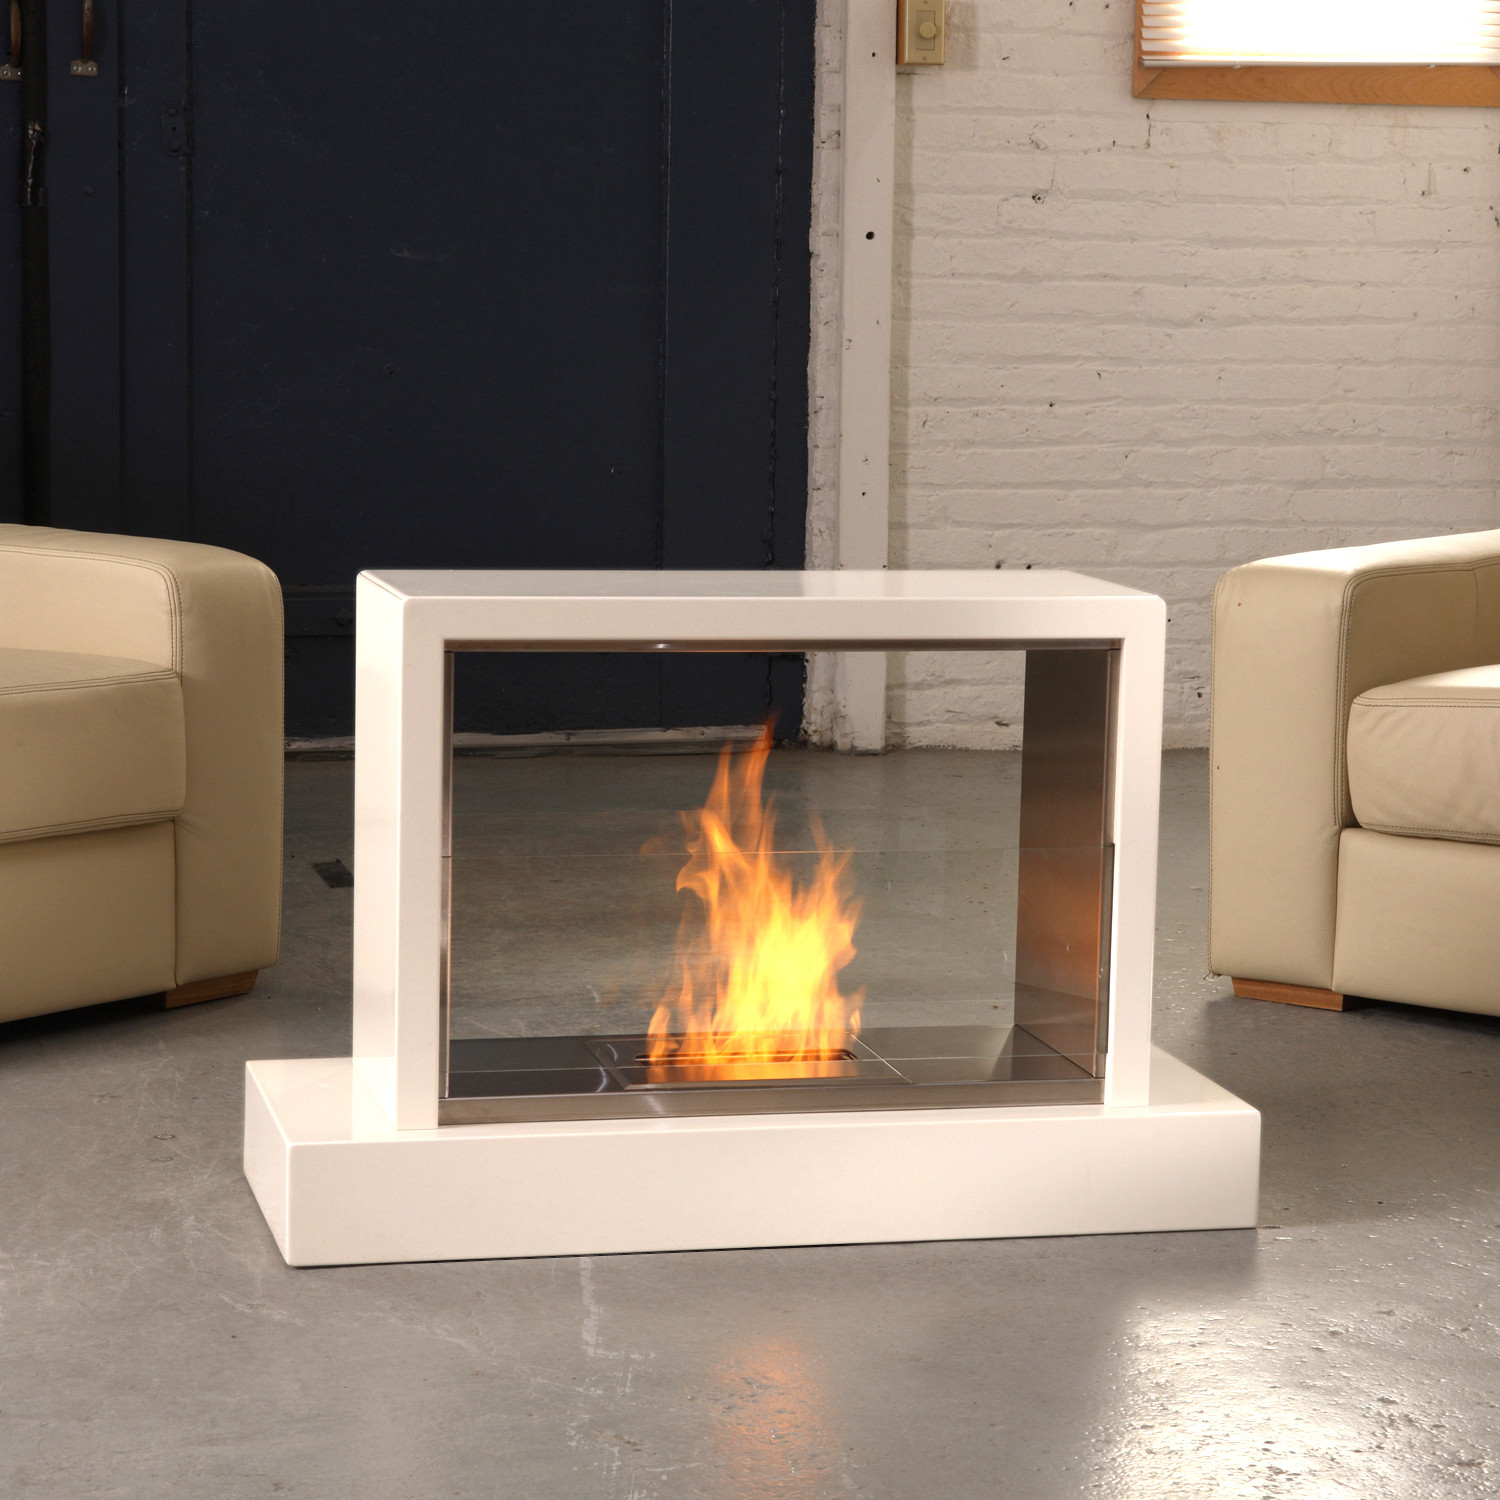 Insight indoor/outdoor fireplace is composed of clean lines which bring contemporary styling to nearly any indoor or outdoor space. Visible from both sides